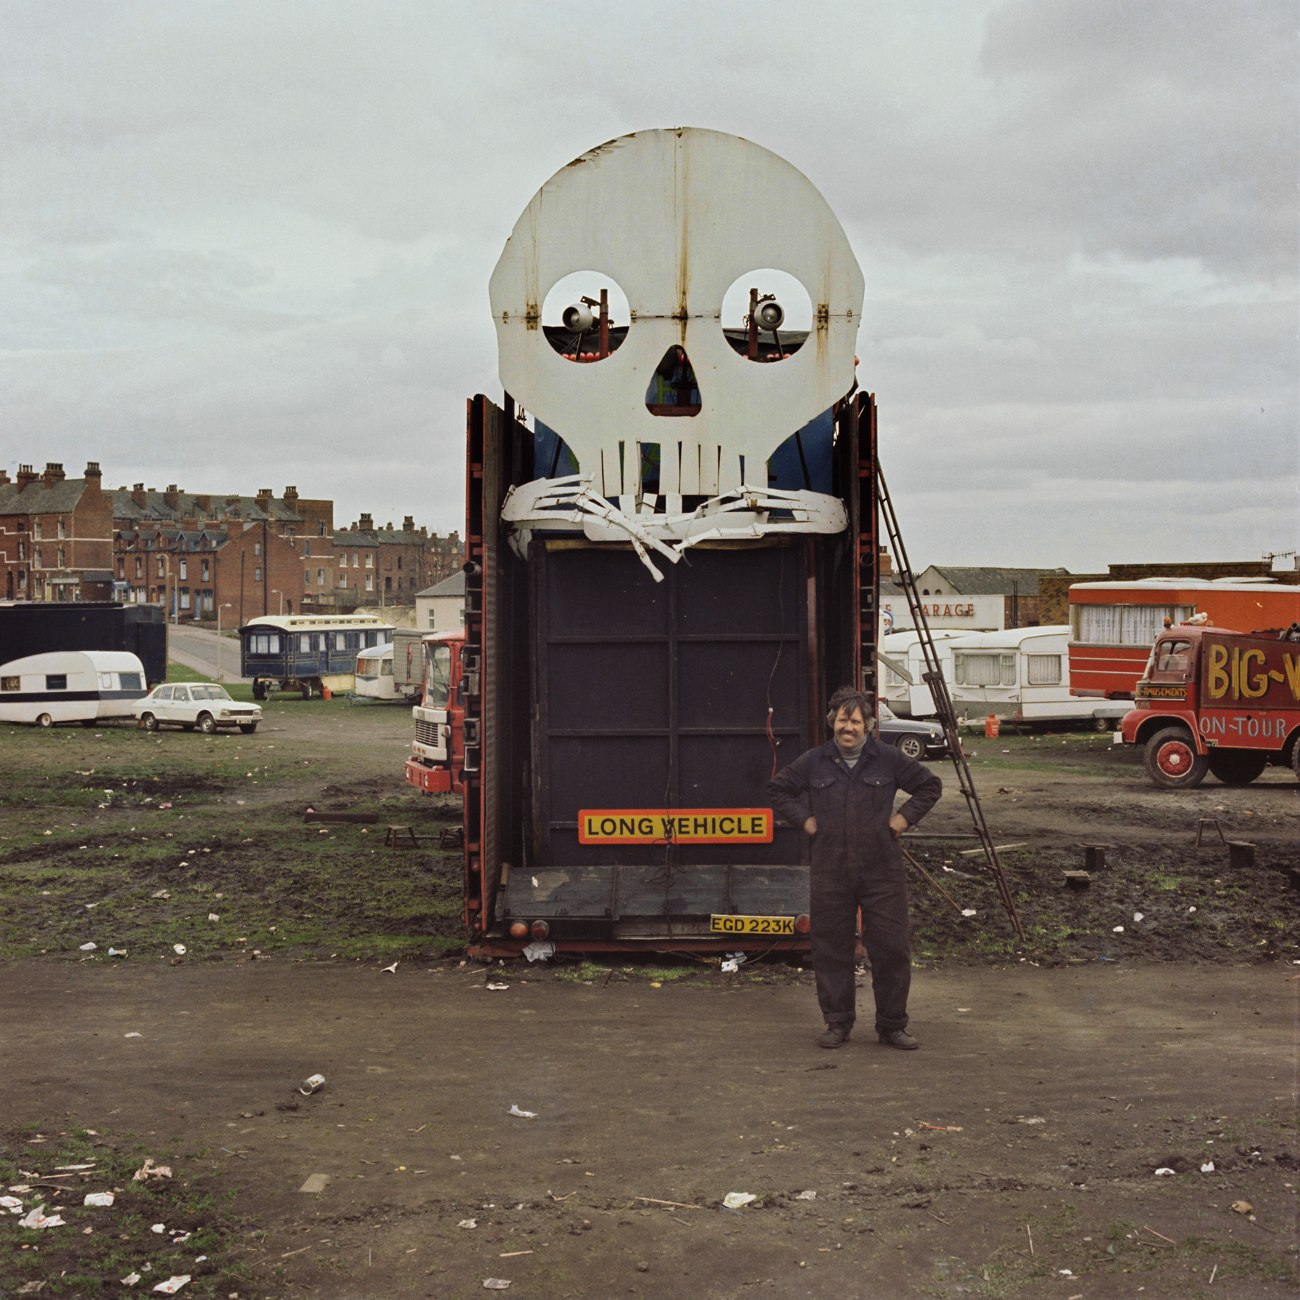 Francis Craven on Woodhouse Moor, Leeds in April 1979